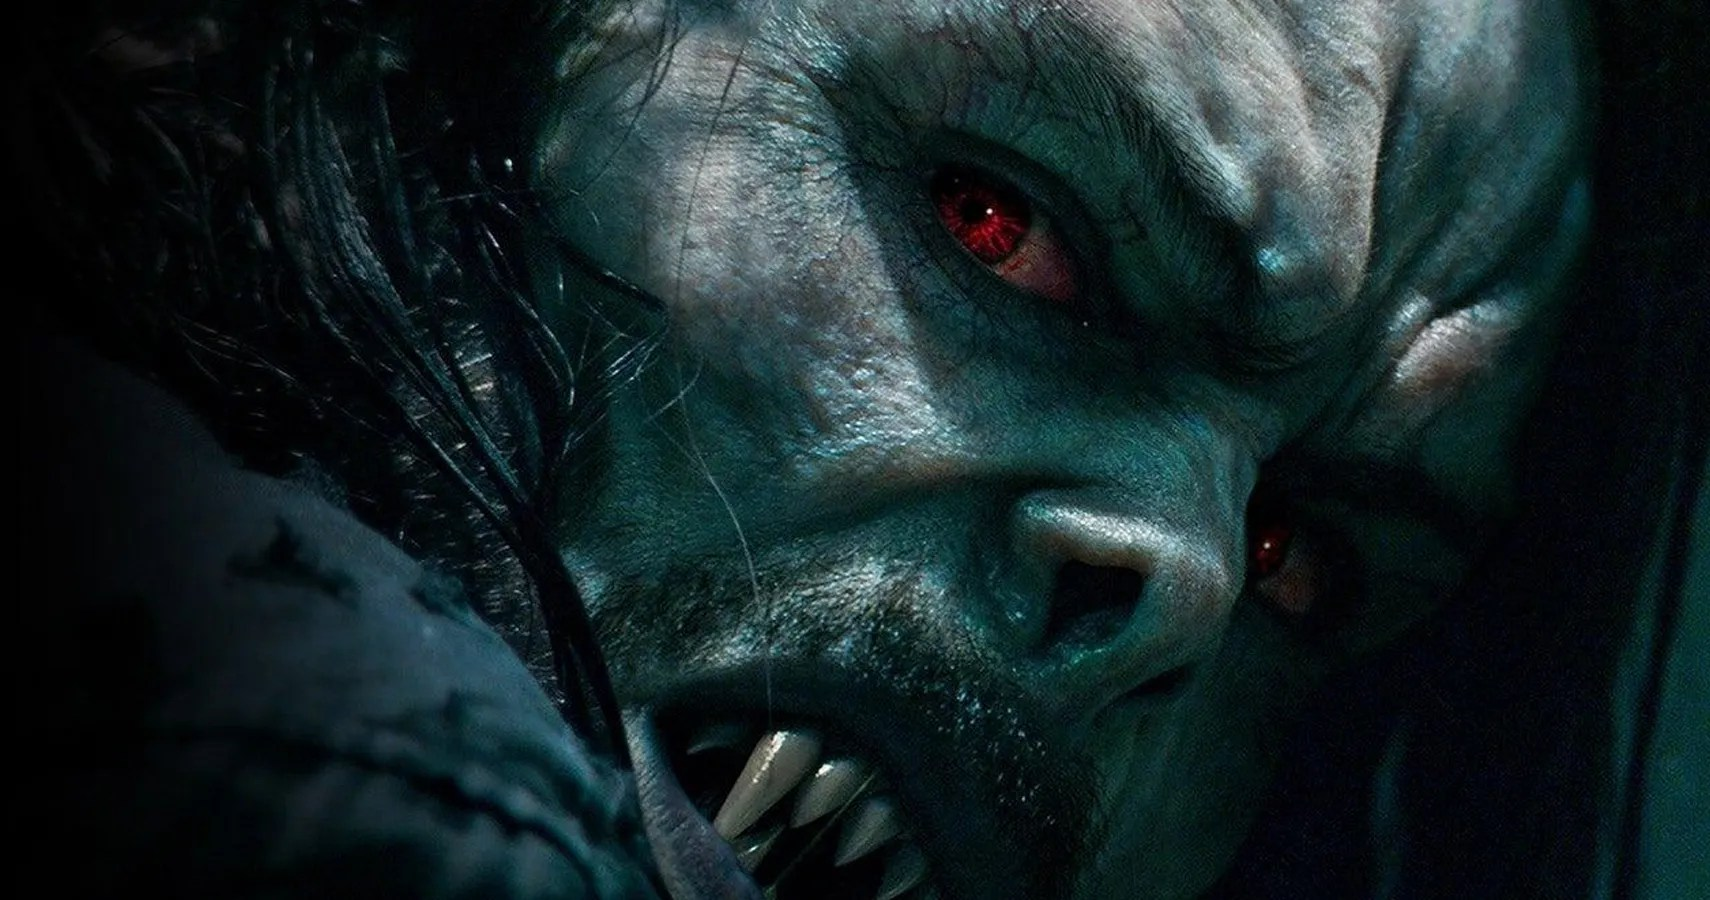 Morbius 10 Things You Need To Know About Him Before